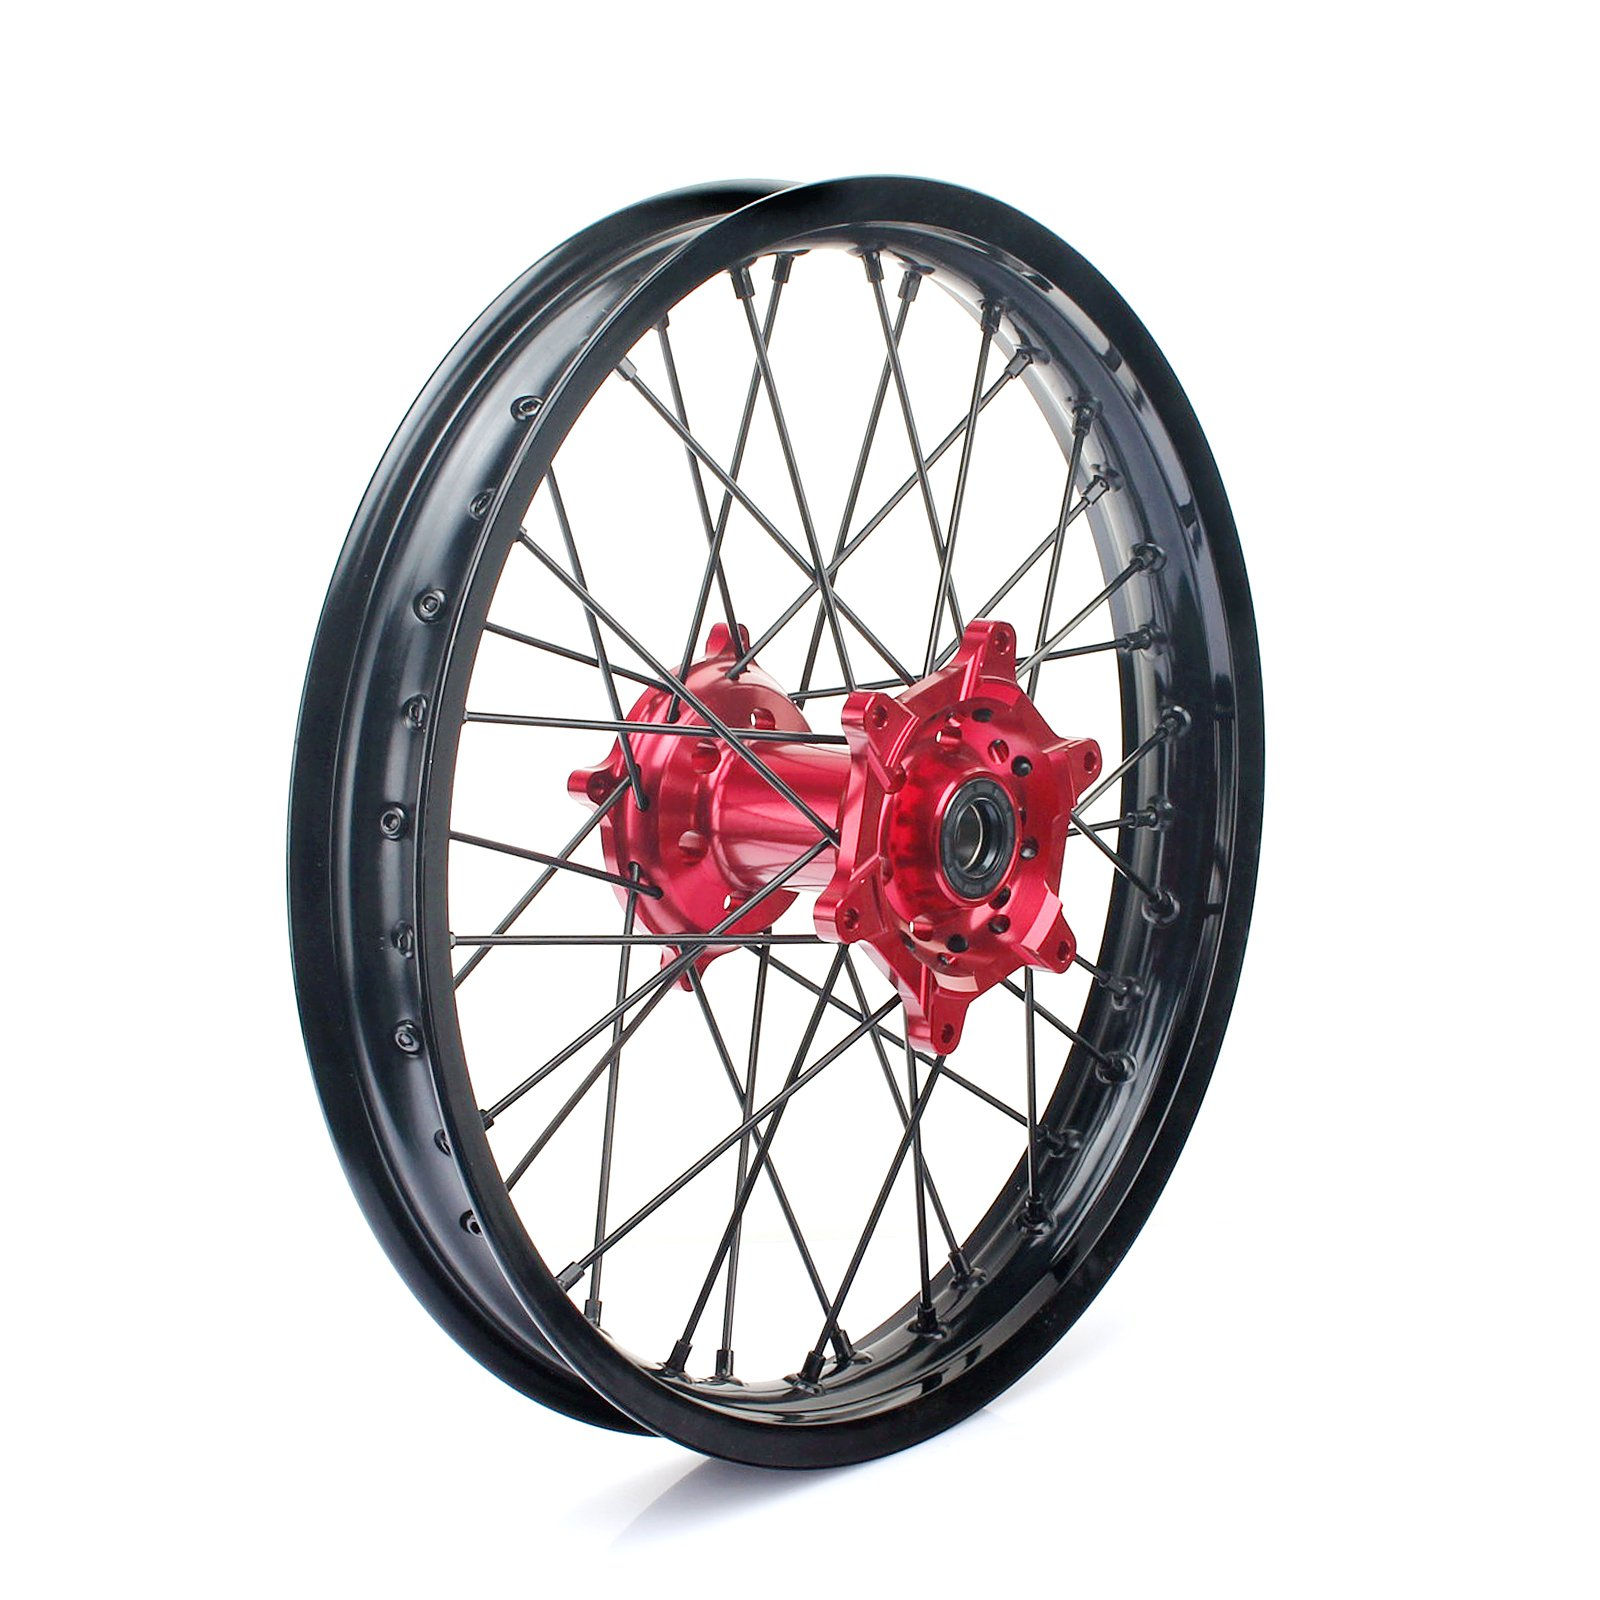 TARAZON Rear 18'' Wheel Complete Set Red Hub Rim Spokes for Honda CRF250R 2014-2017 CRF450R 2013-2016